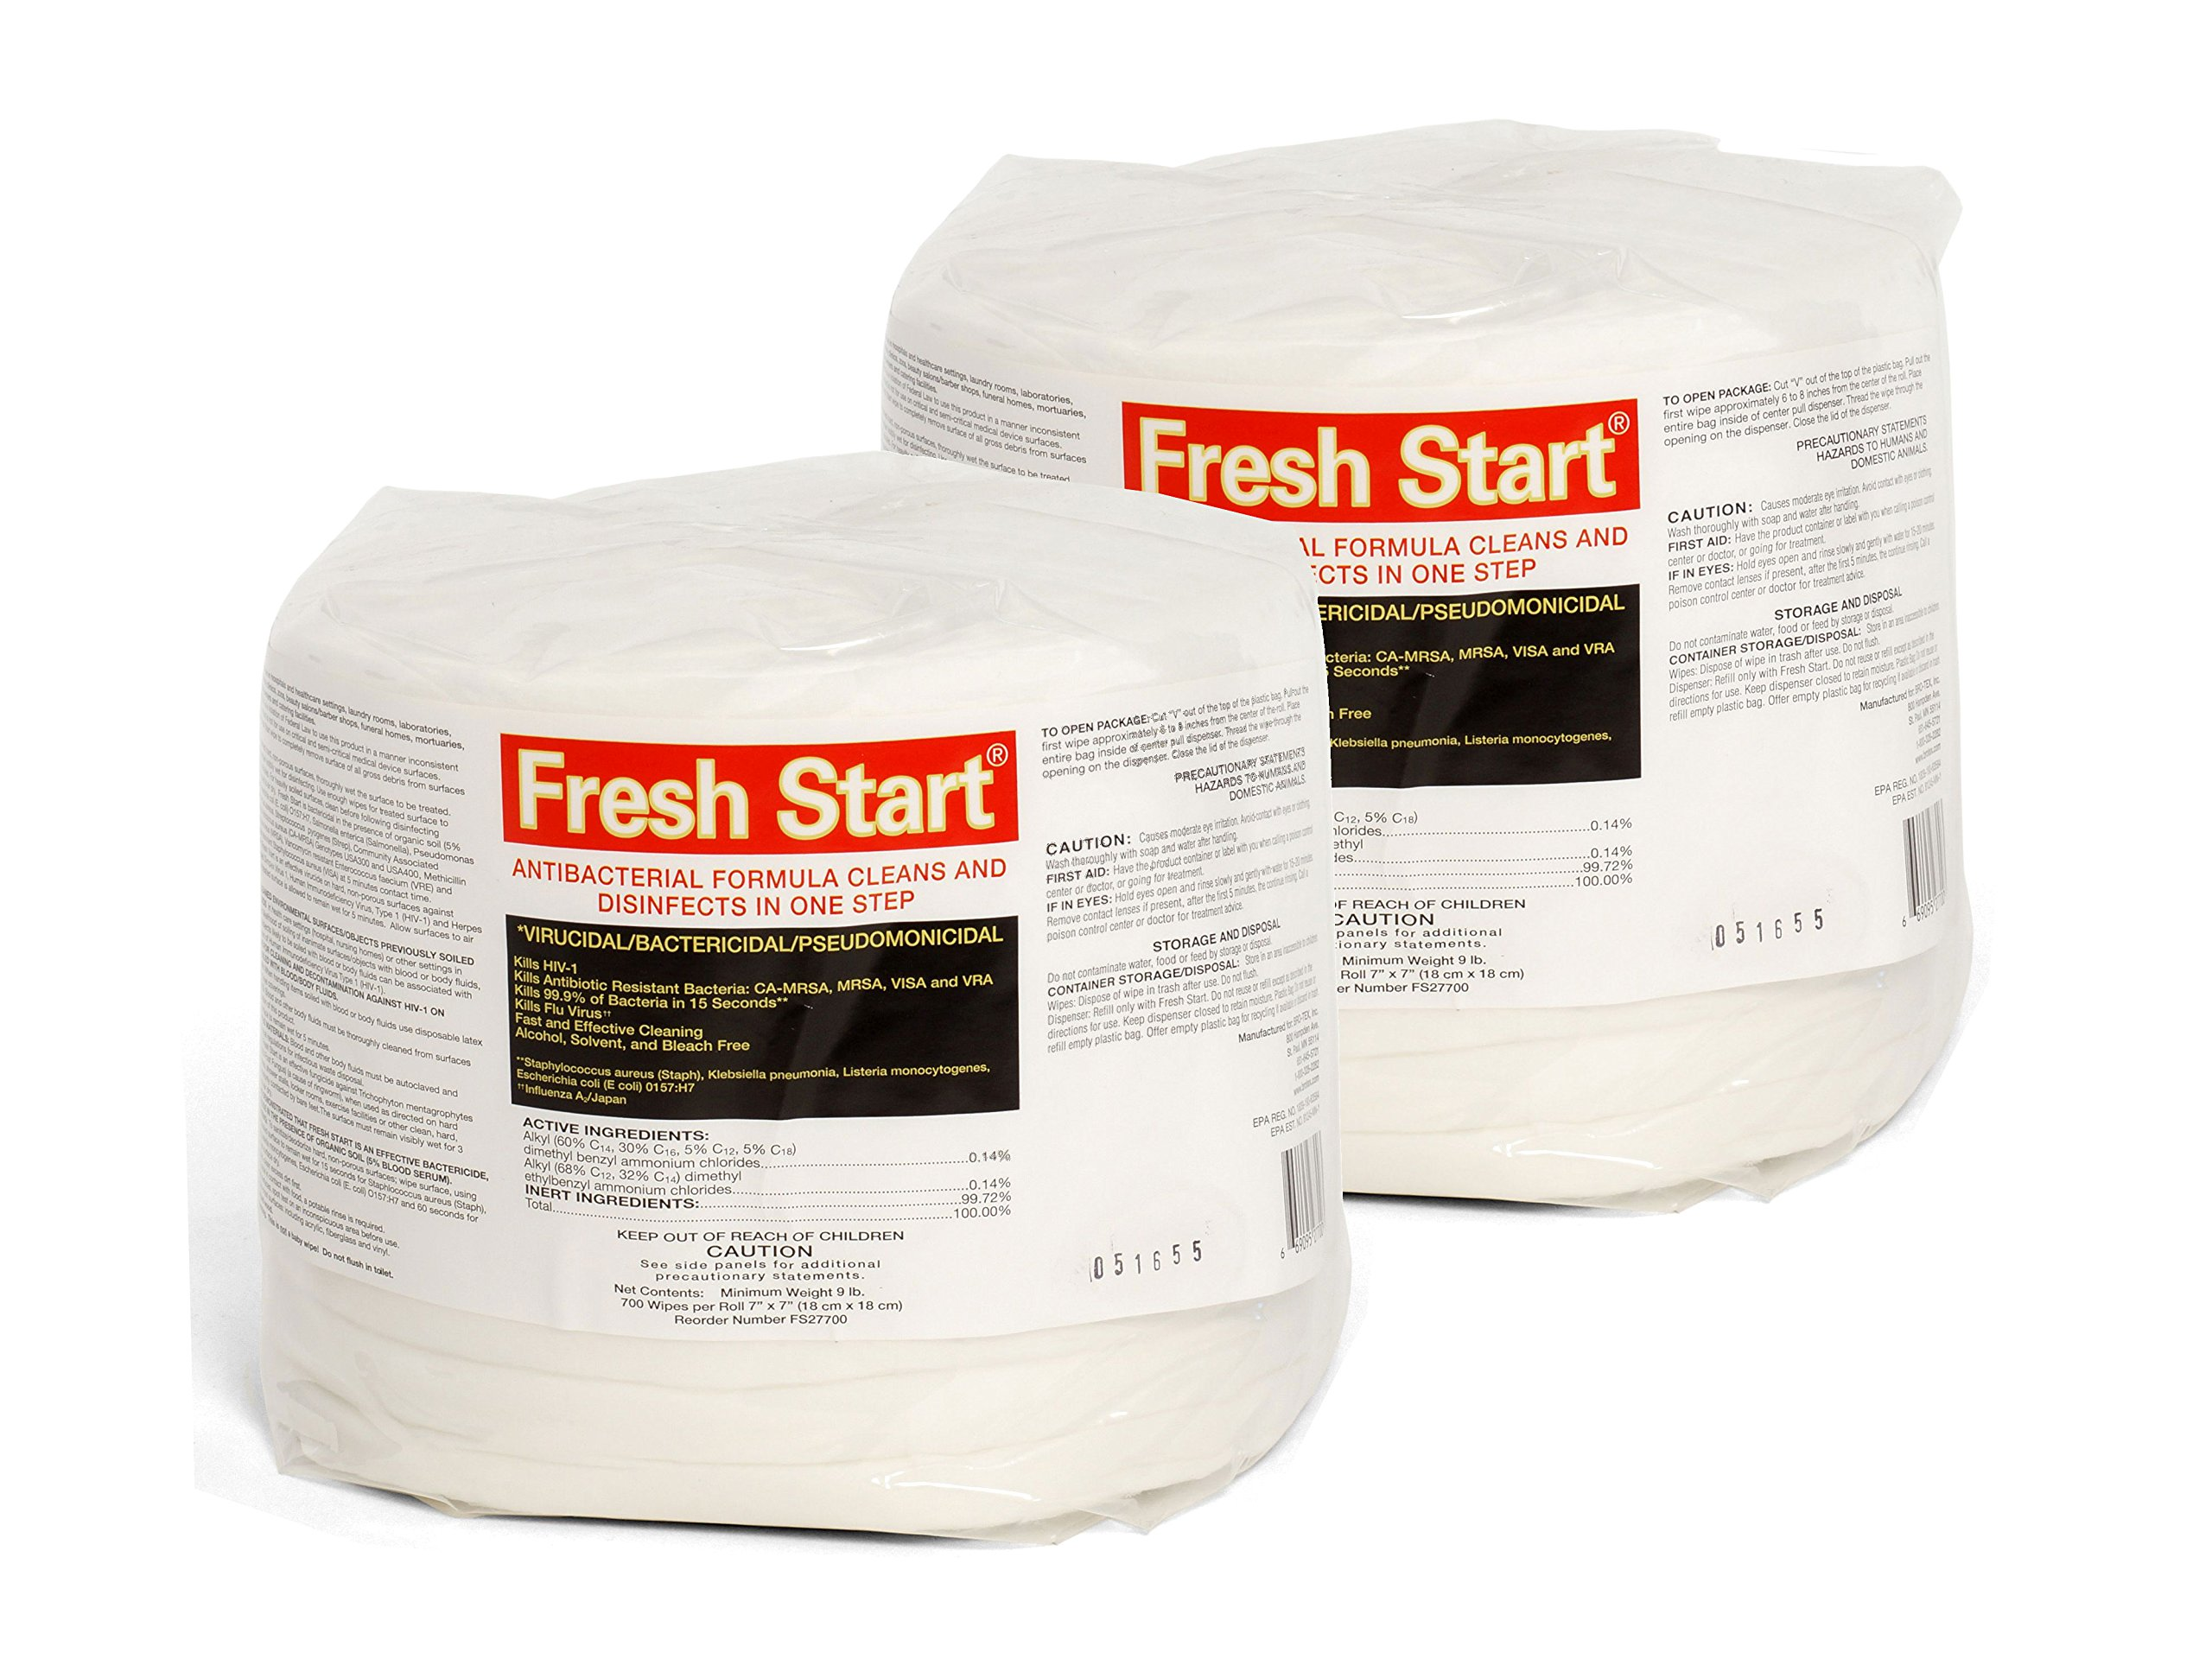 Fresh Start Disinfectant Premium Antibacterial Gym Wipes 2 Rolls, 1400 sheets (700 Wipes/Roll) 7'' x 7'' sheet by FreshStart